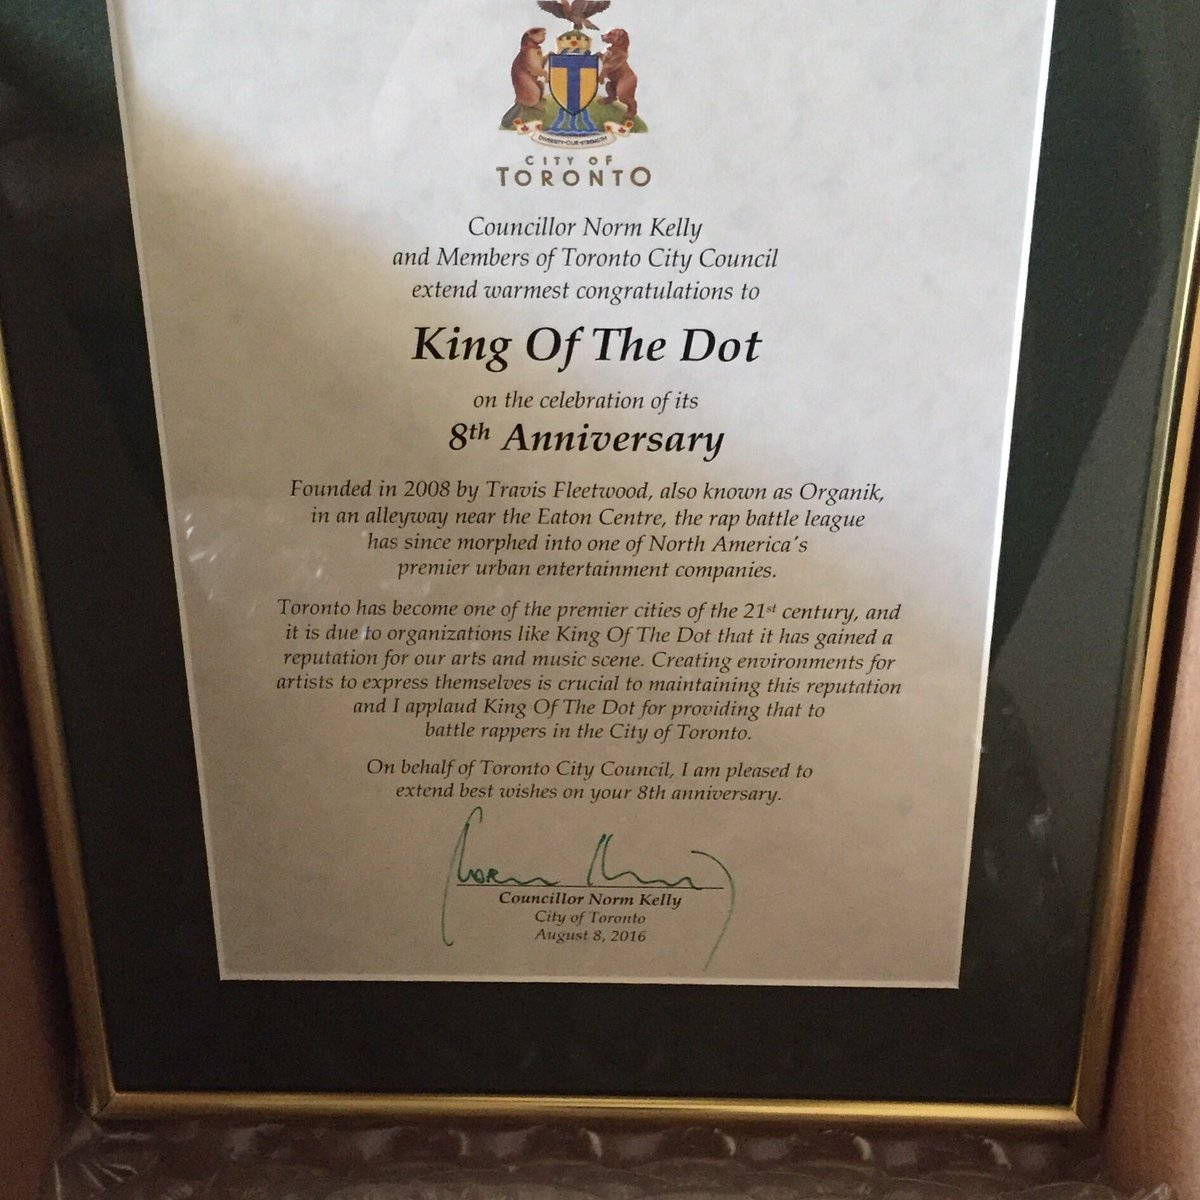 We are truly humbled. Thank you @norm and the City of Toronto for your recognition of KOTD! https://t.co/RPv9dWlAhR